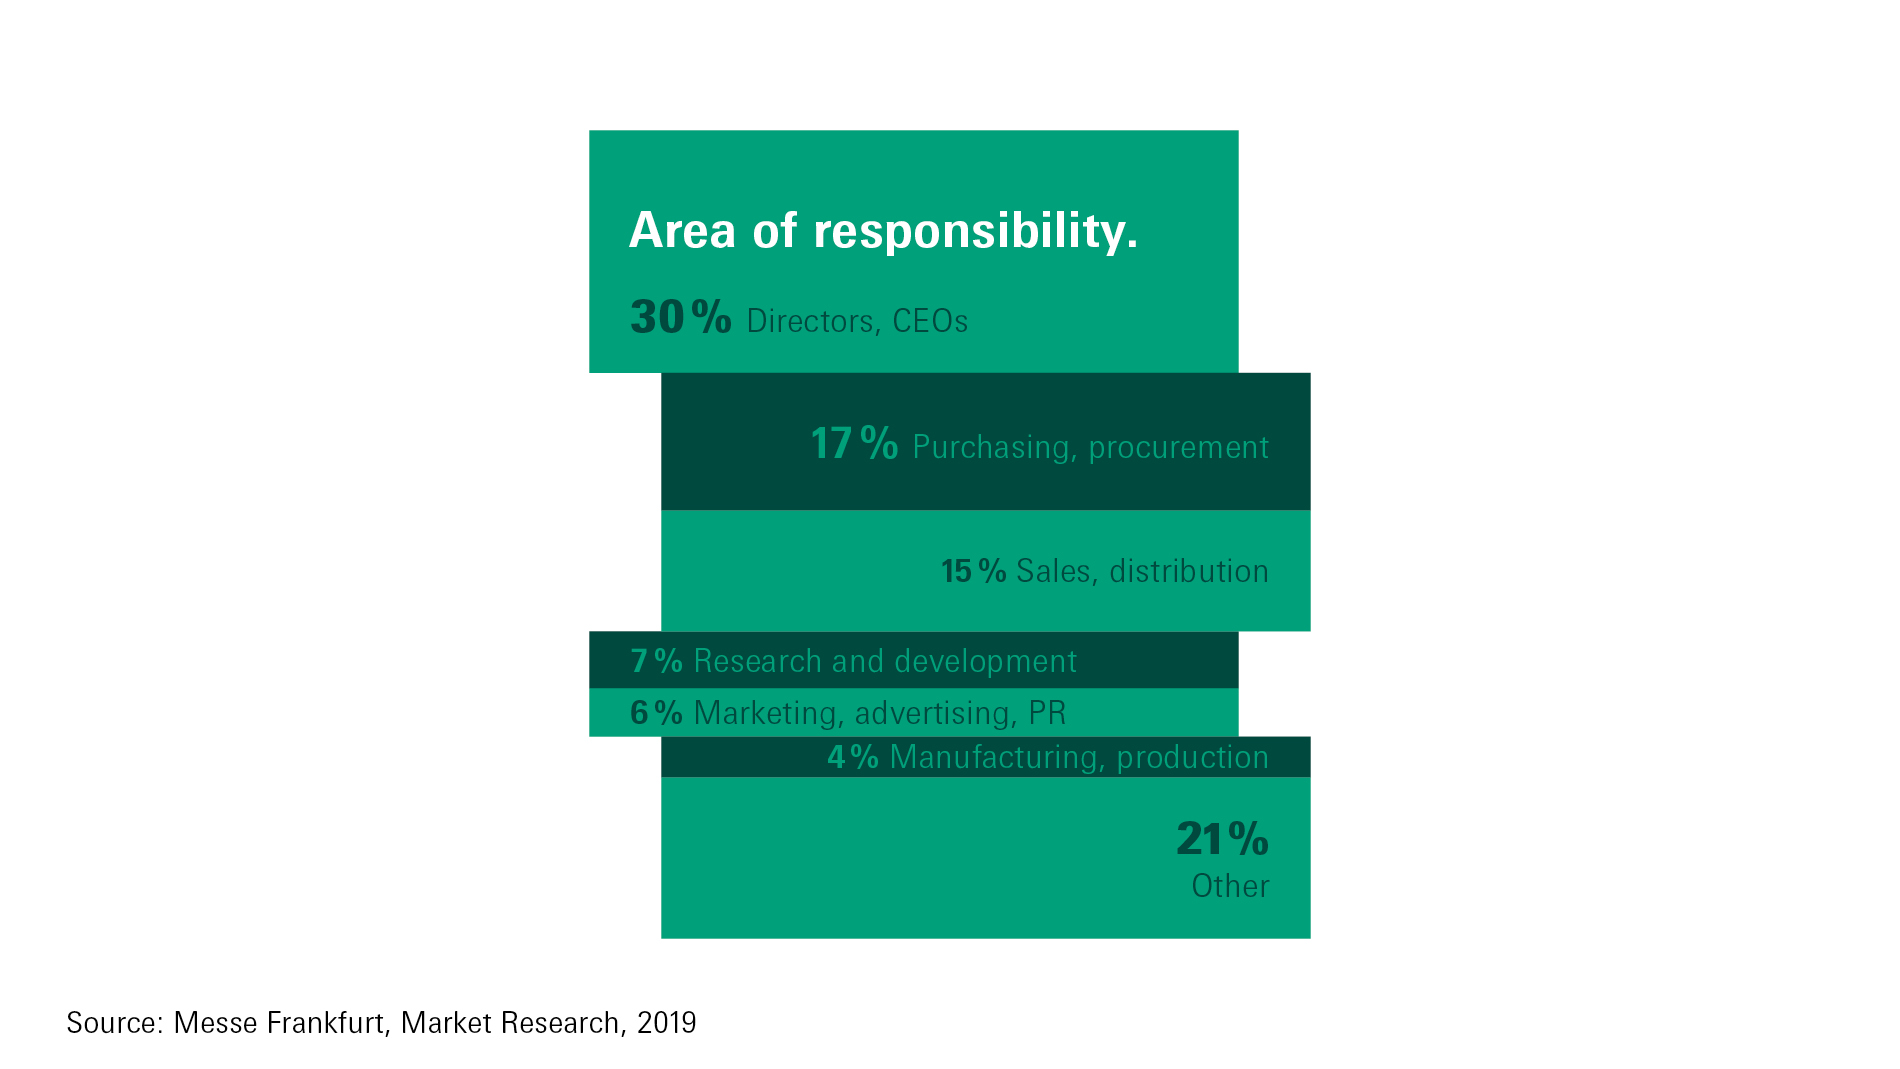 Ambiente - Area of responsibility 2019